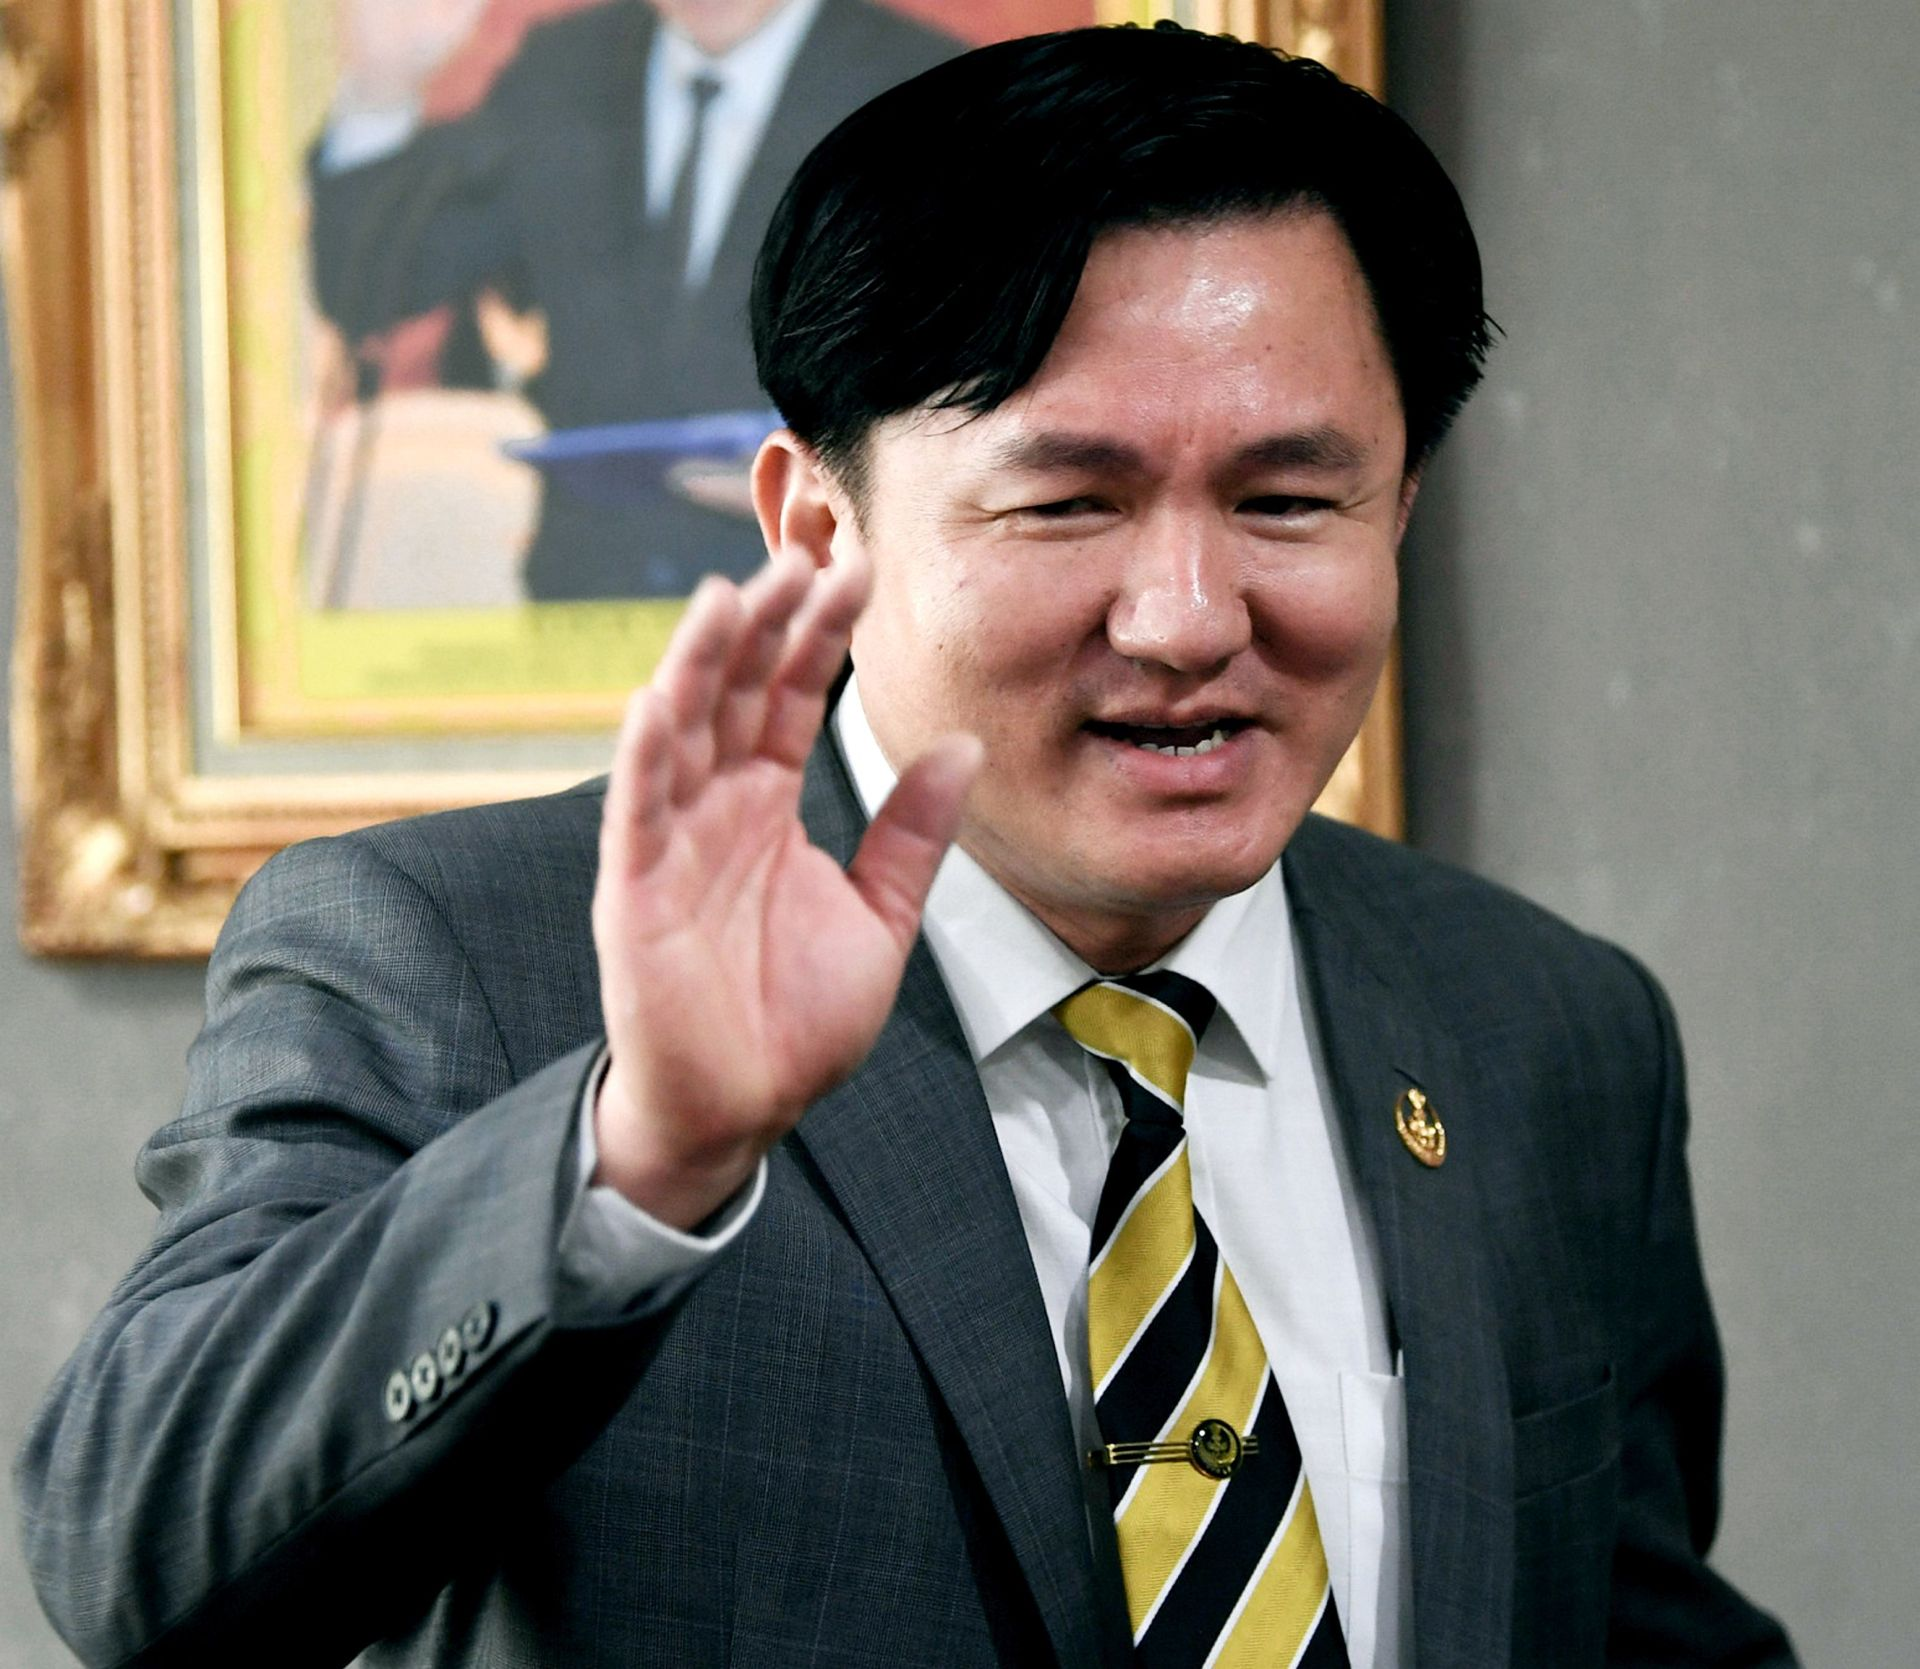 Audio clip of DAP leader criticising Paul Yong for resuming duties goes viral